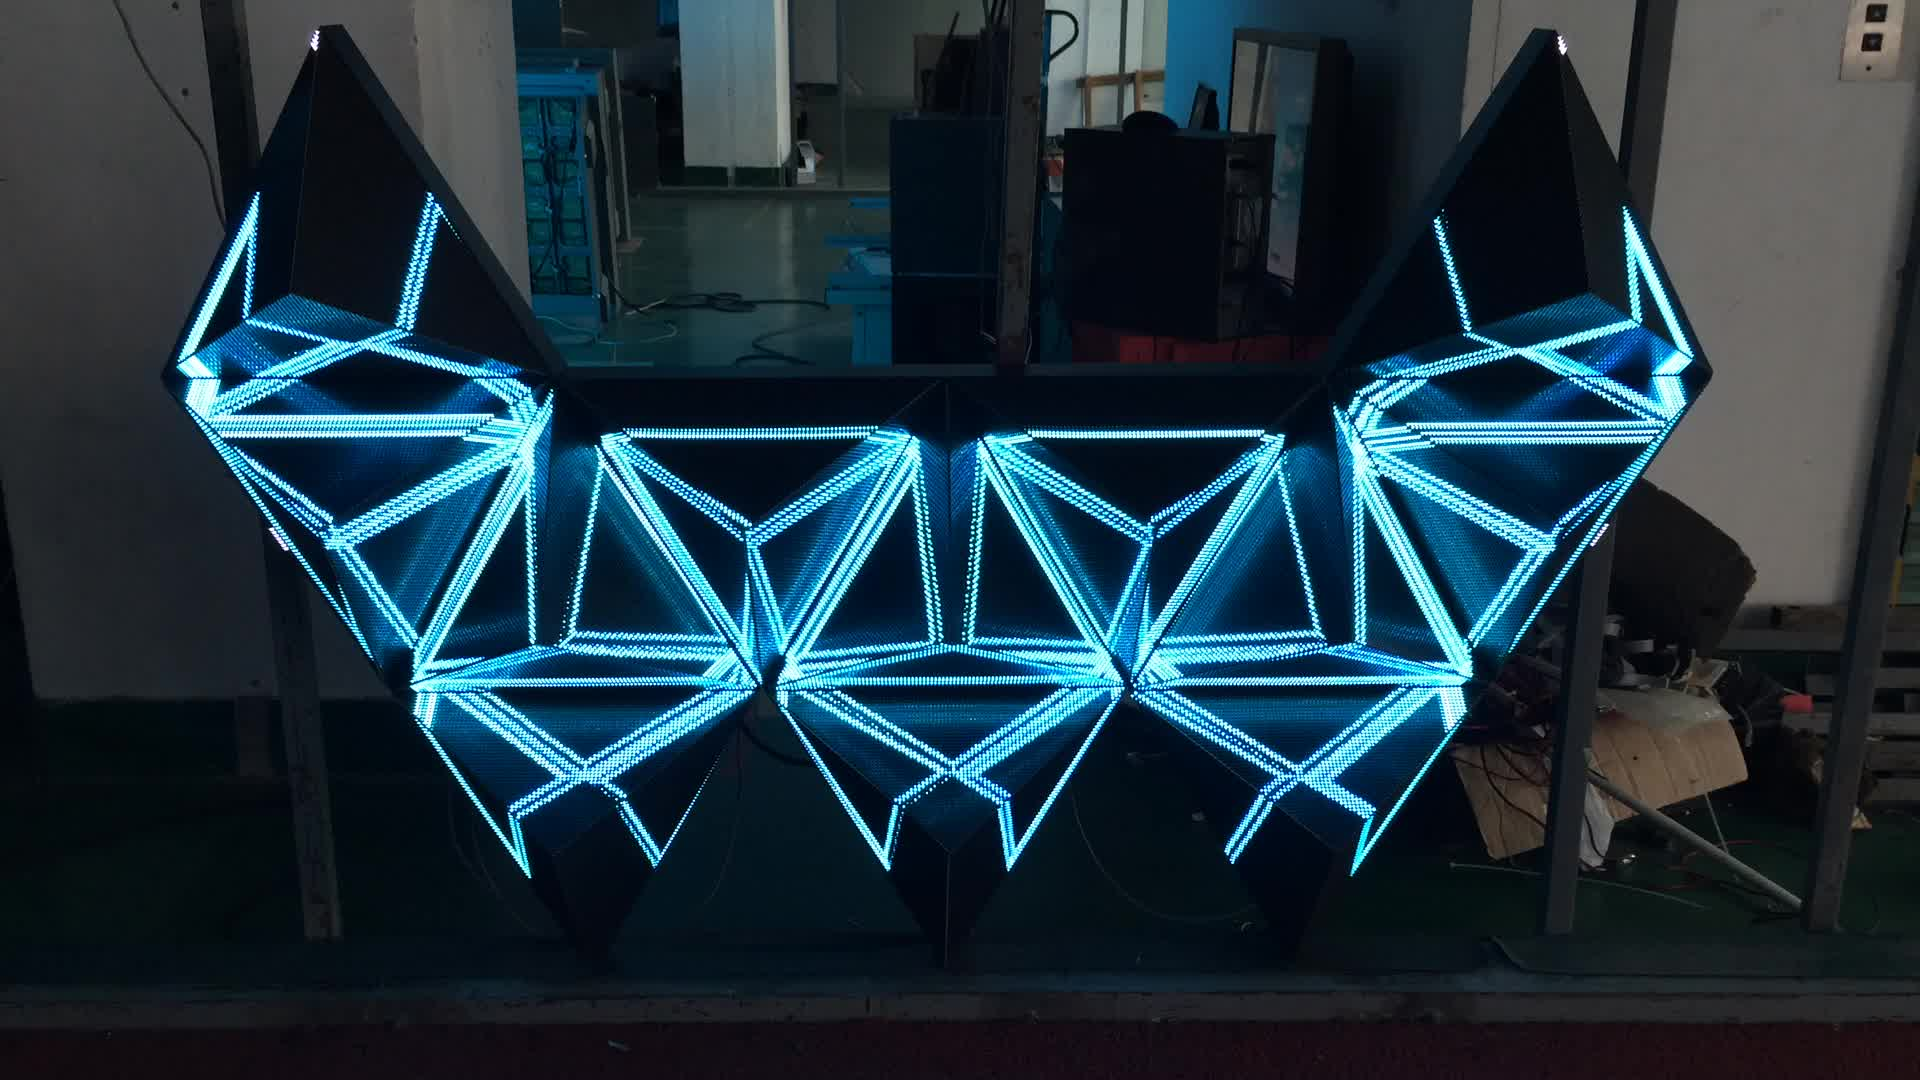 2017 hot selling nightclub led display 3d dj booth console table